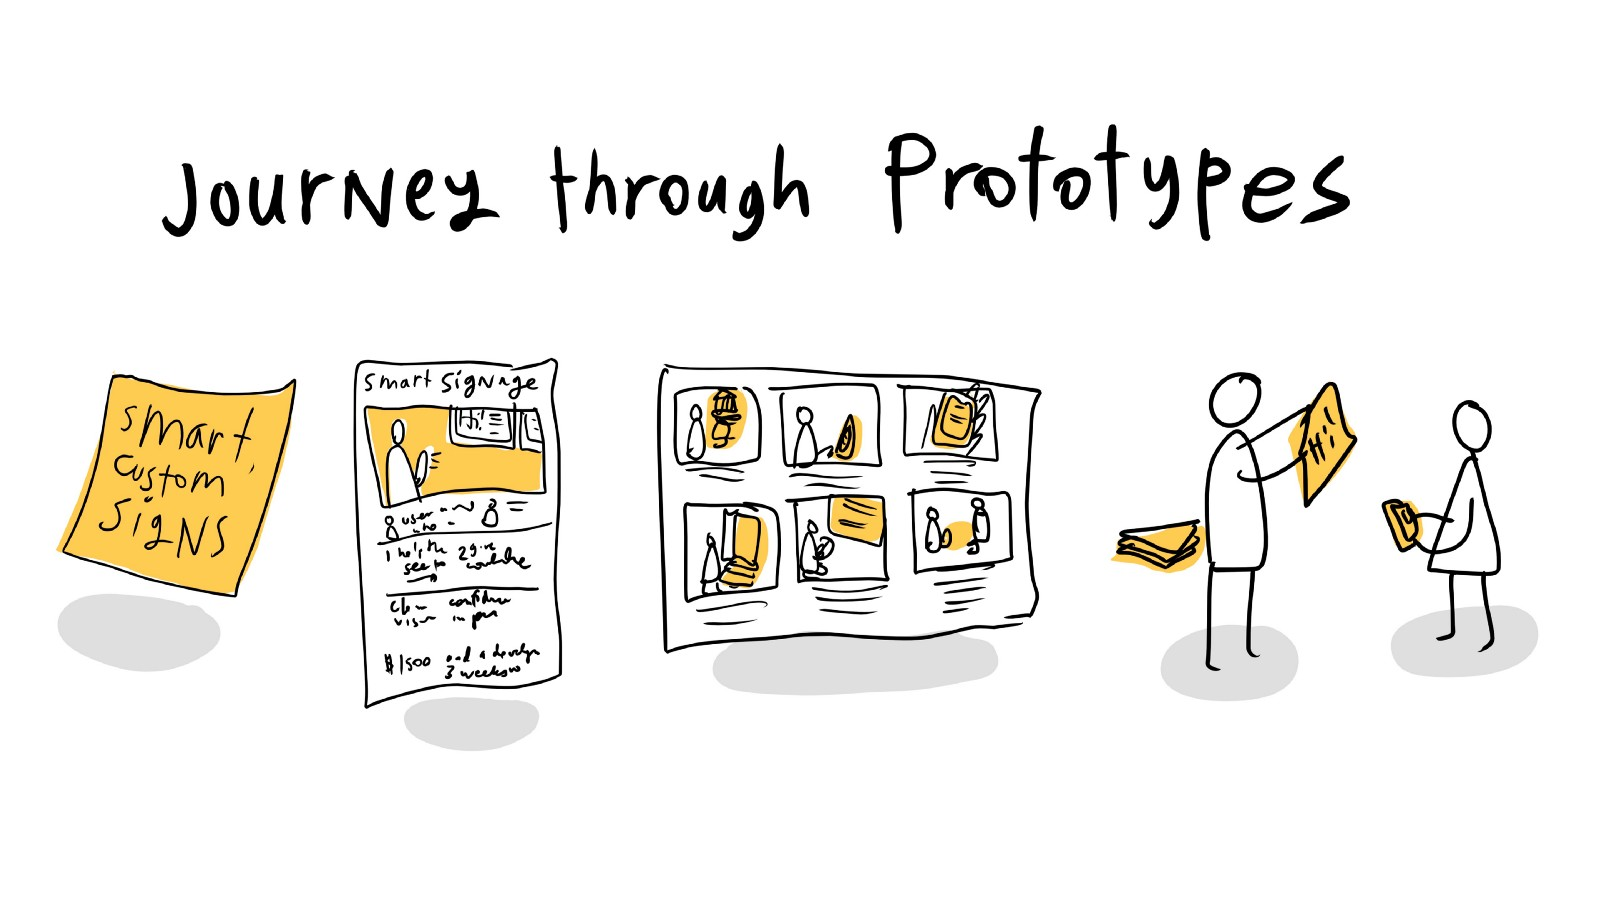 the prototyping journey from post it to wizard of oz